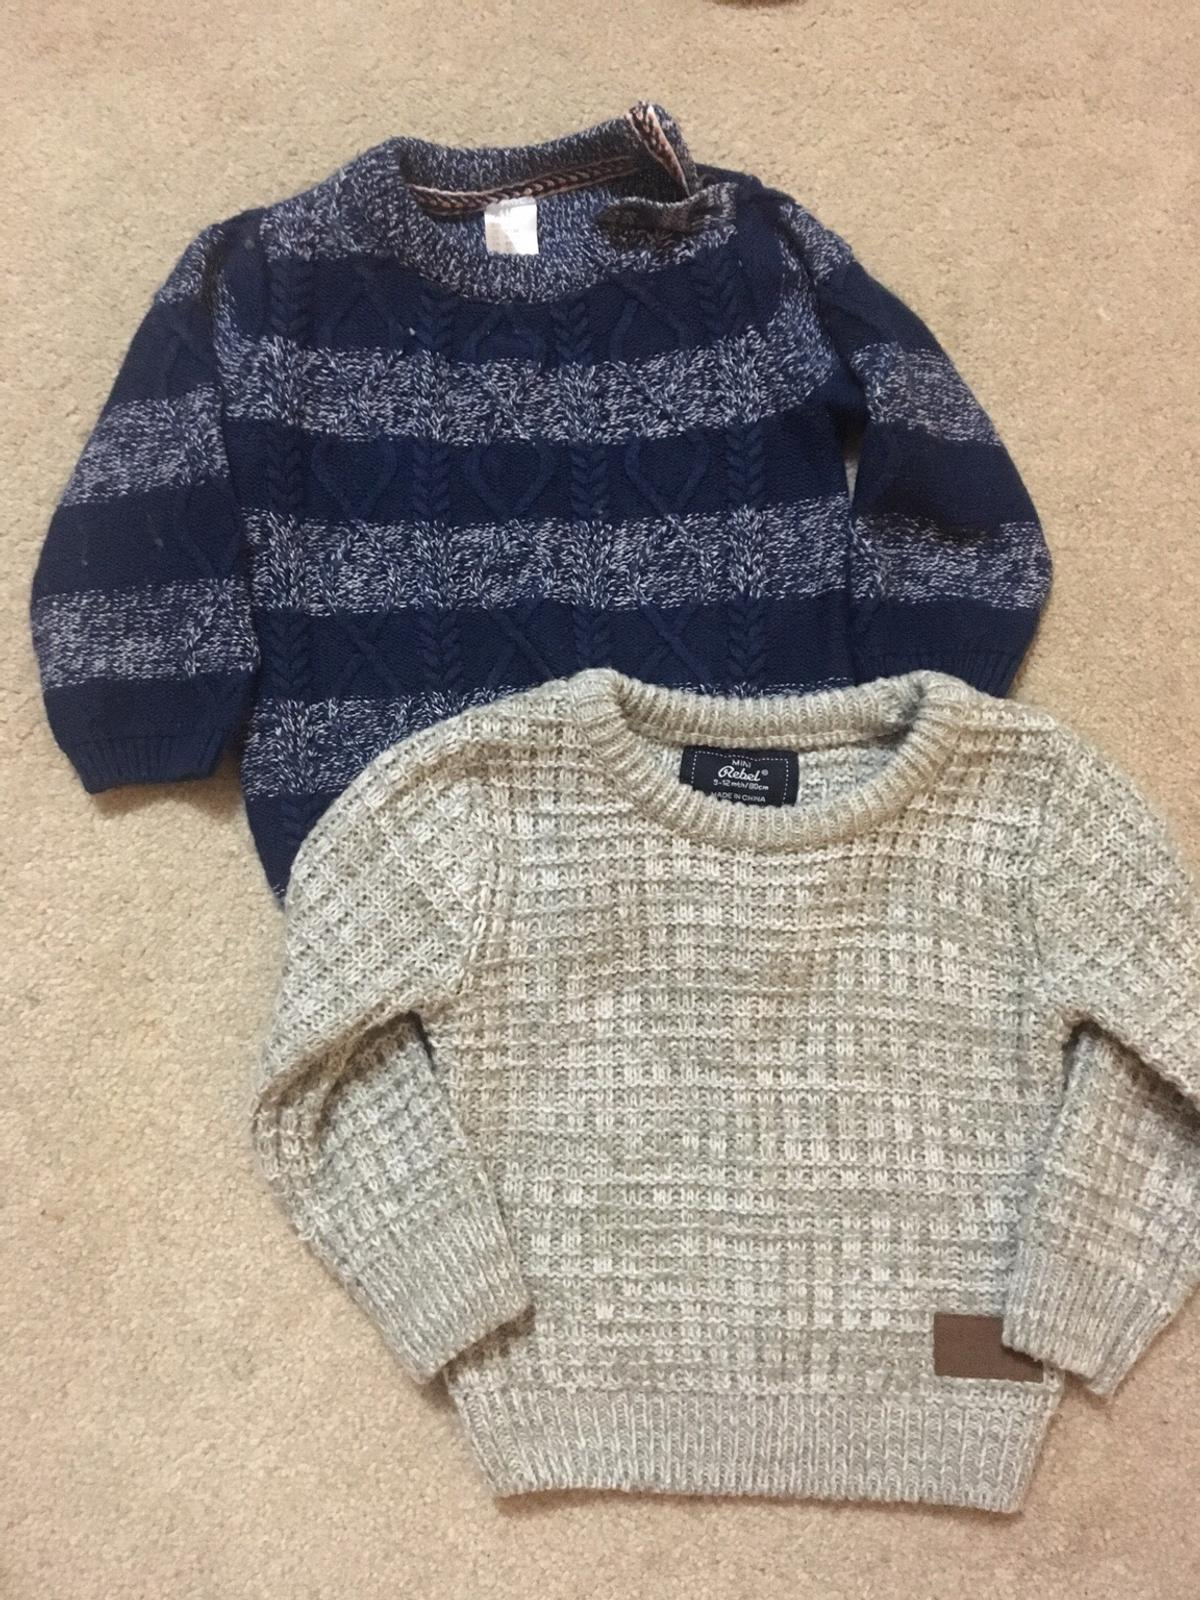 9476b0488 2 x Baby Boy Jumpers 9-12 months in DY5 Dudley for £4.00 for sale ...